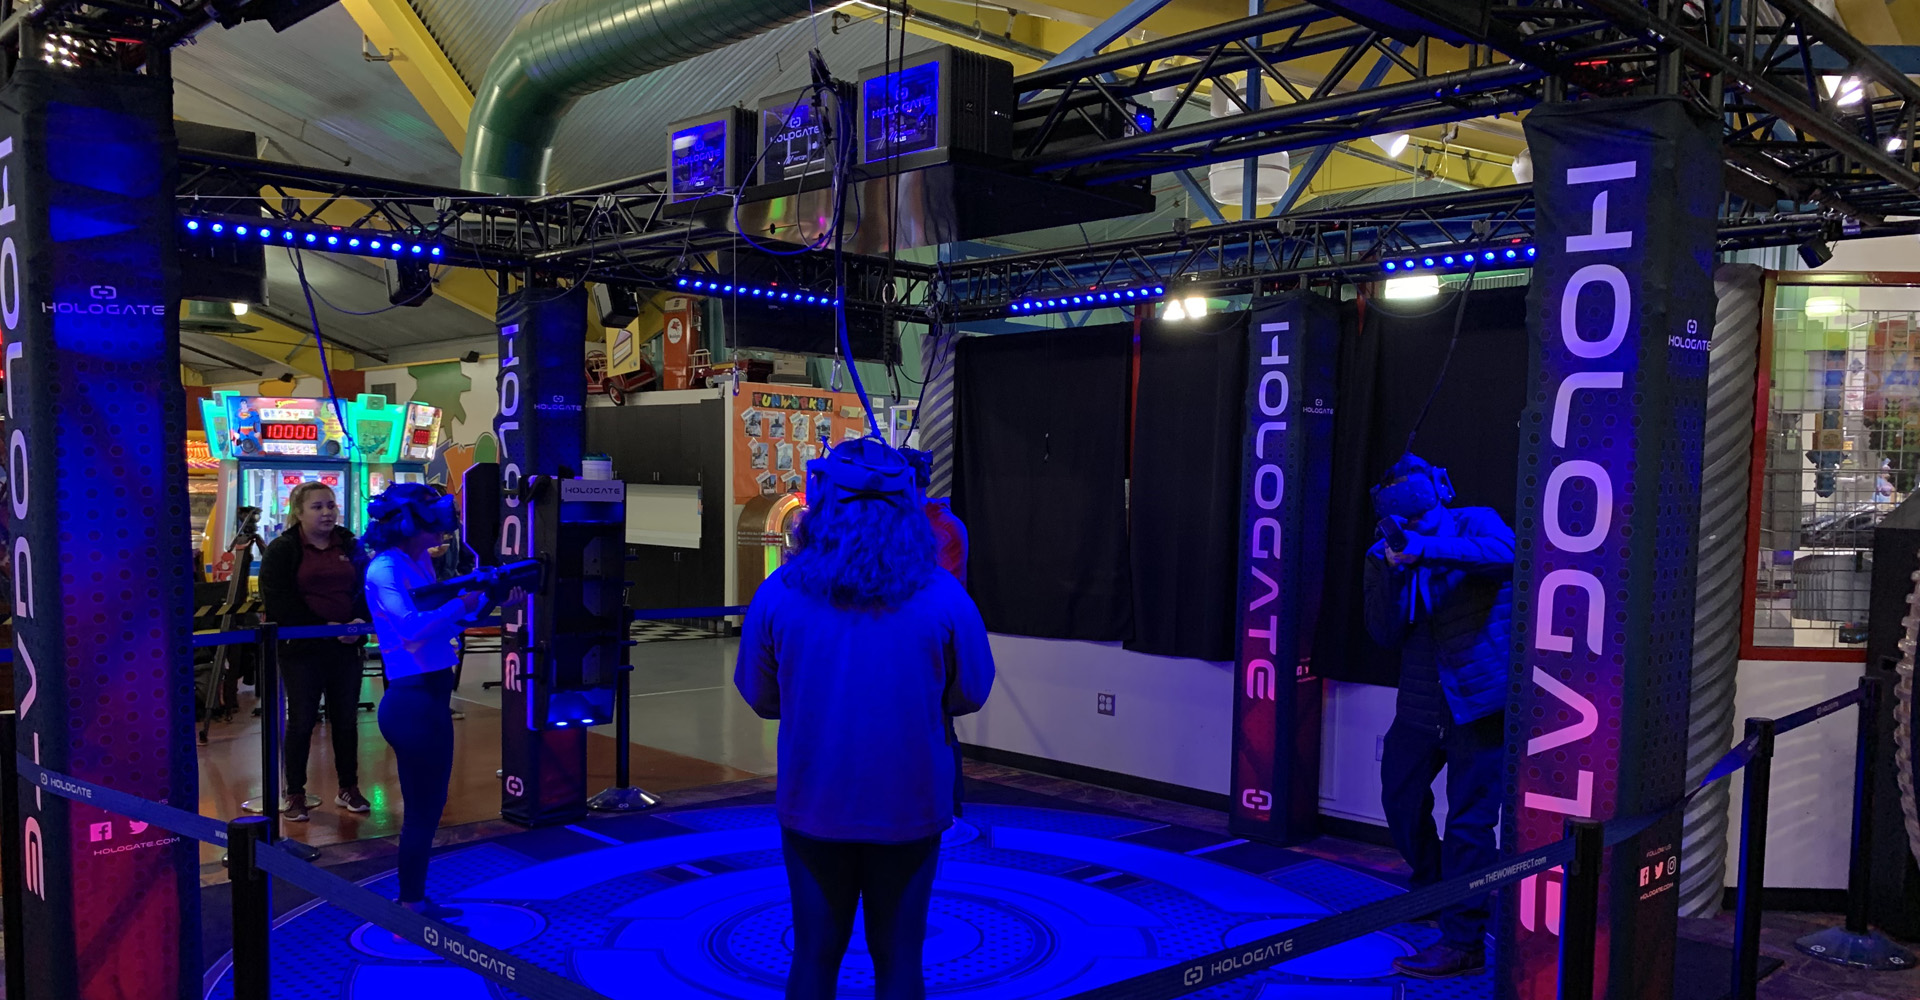 Hologate VR Experience